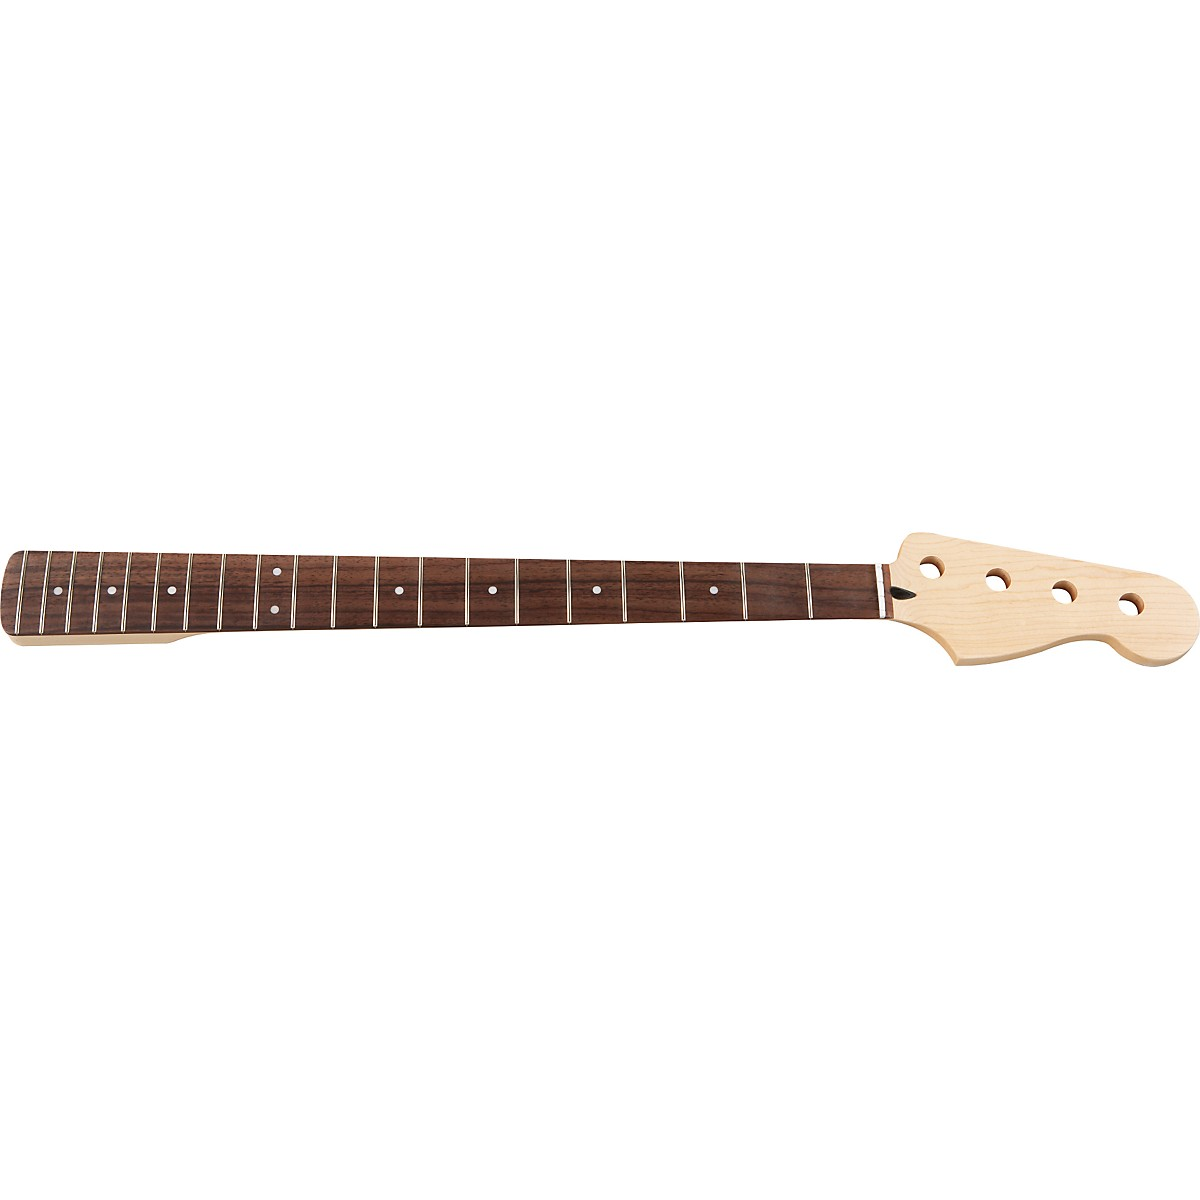 Mighty Mite MM2906 P-Bass Replacement Neck with Rosewood Fingerboard